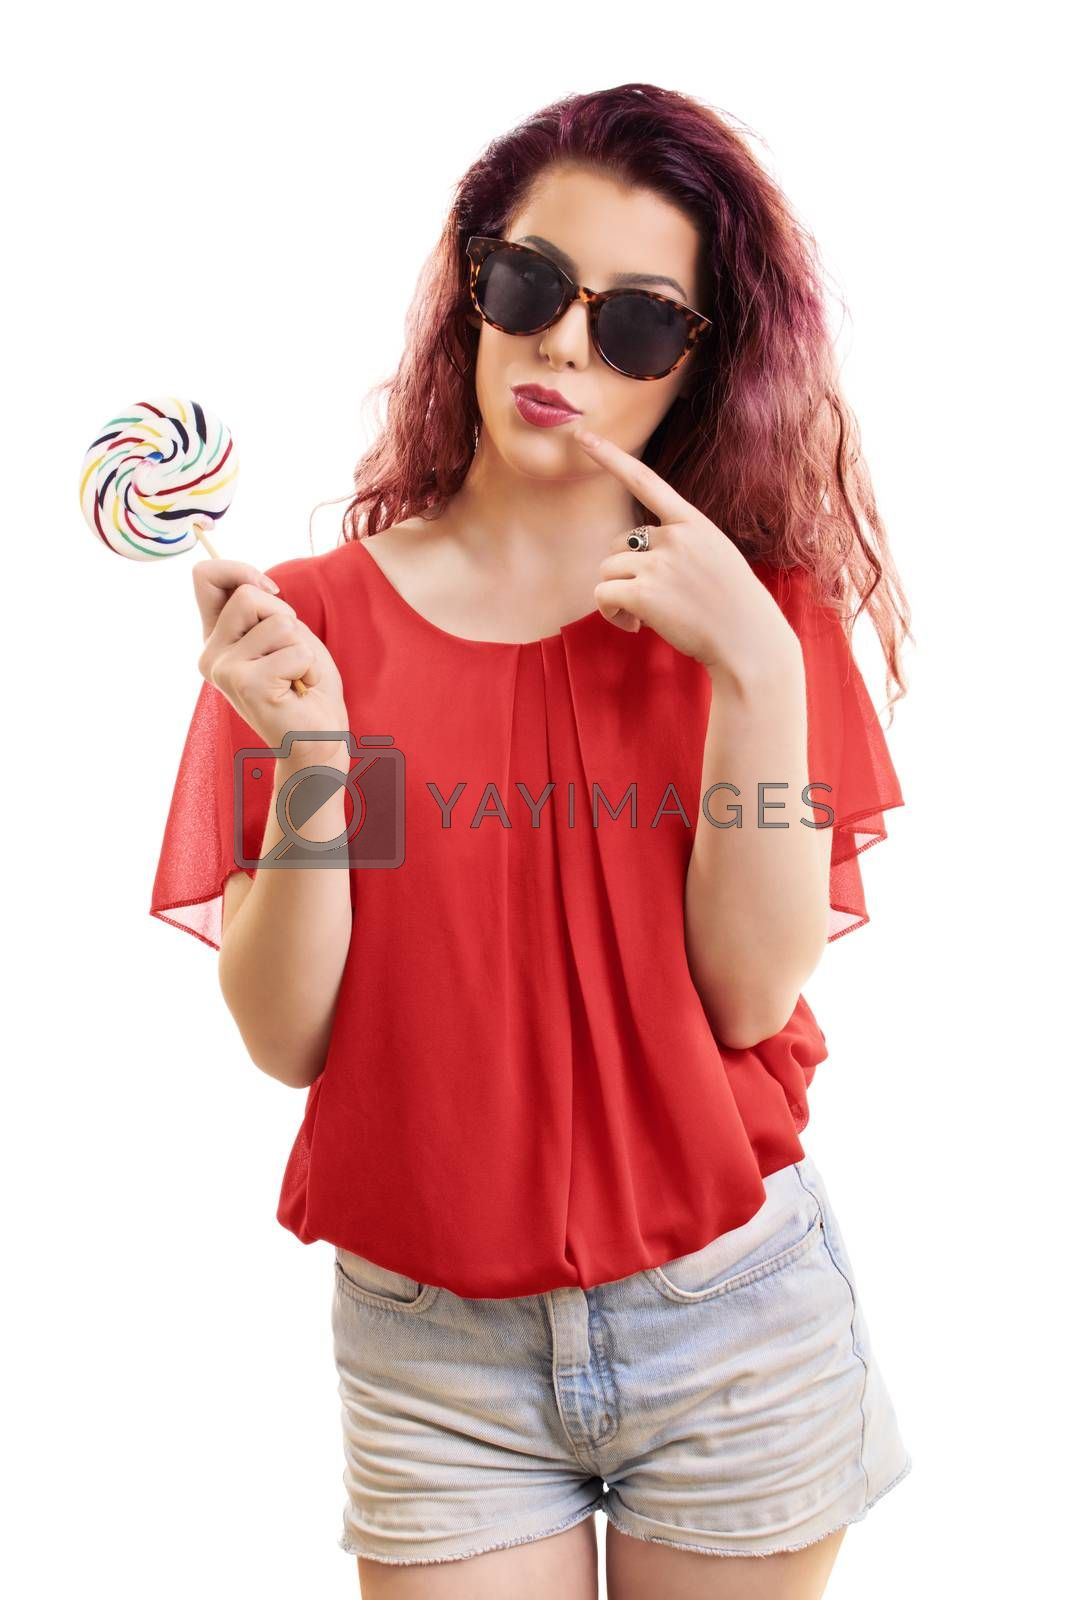 Beautiful young redhead girl with sunglasses holding a colorful lollipop, isolated on white background.